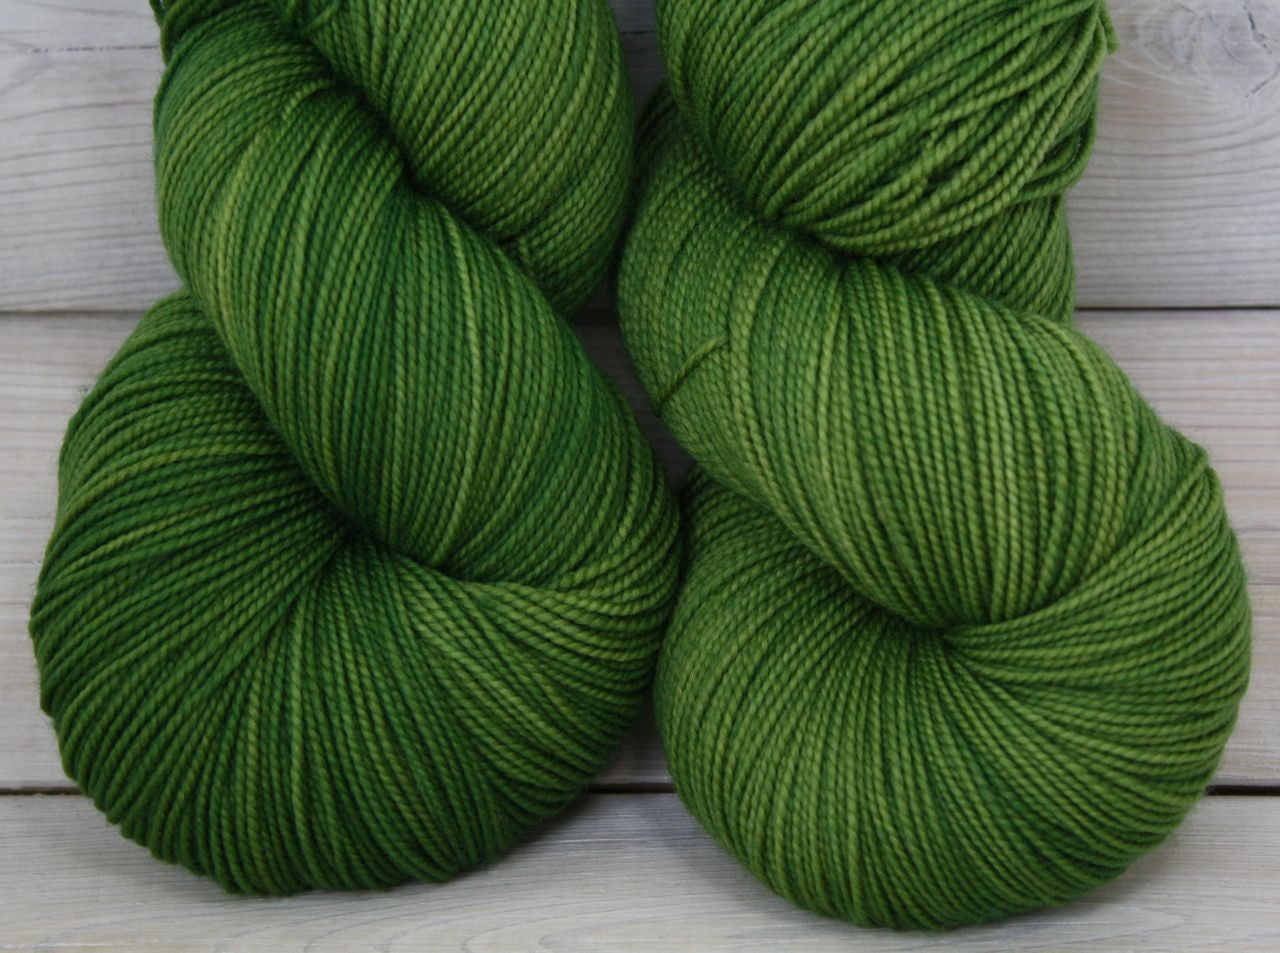 Celeste Yarn | Colorway: Moss